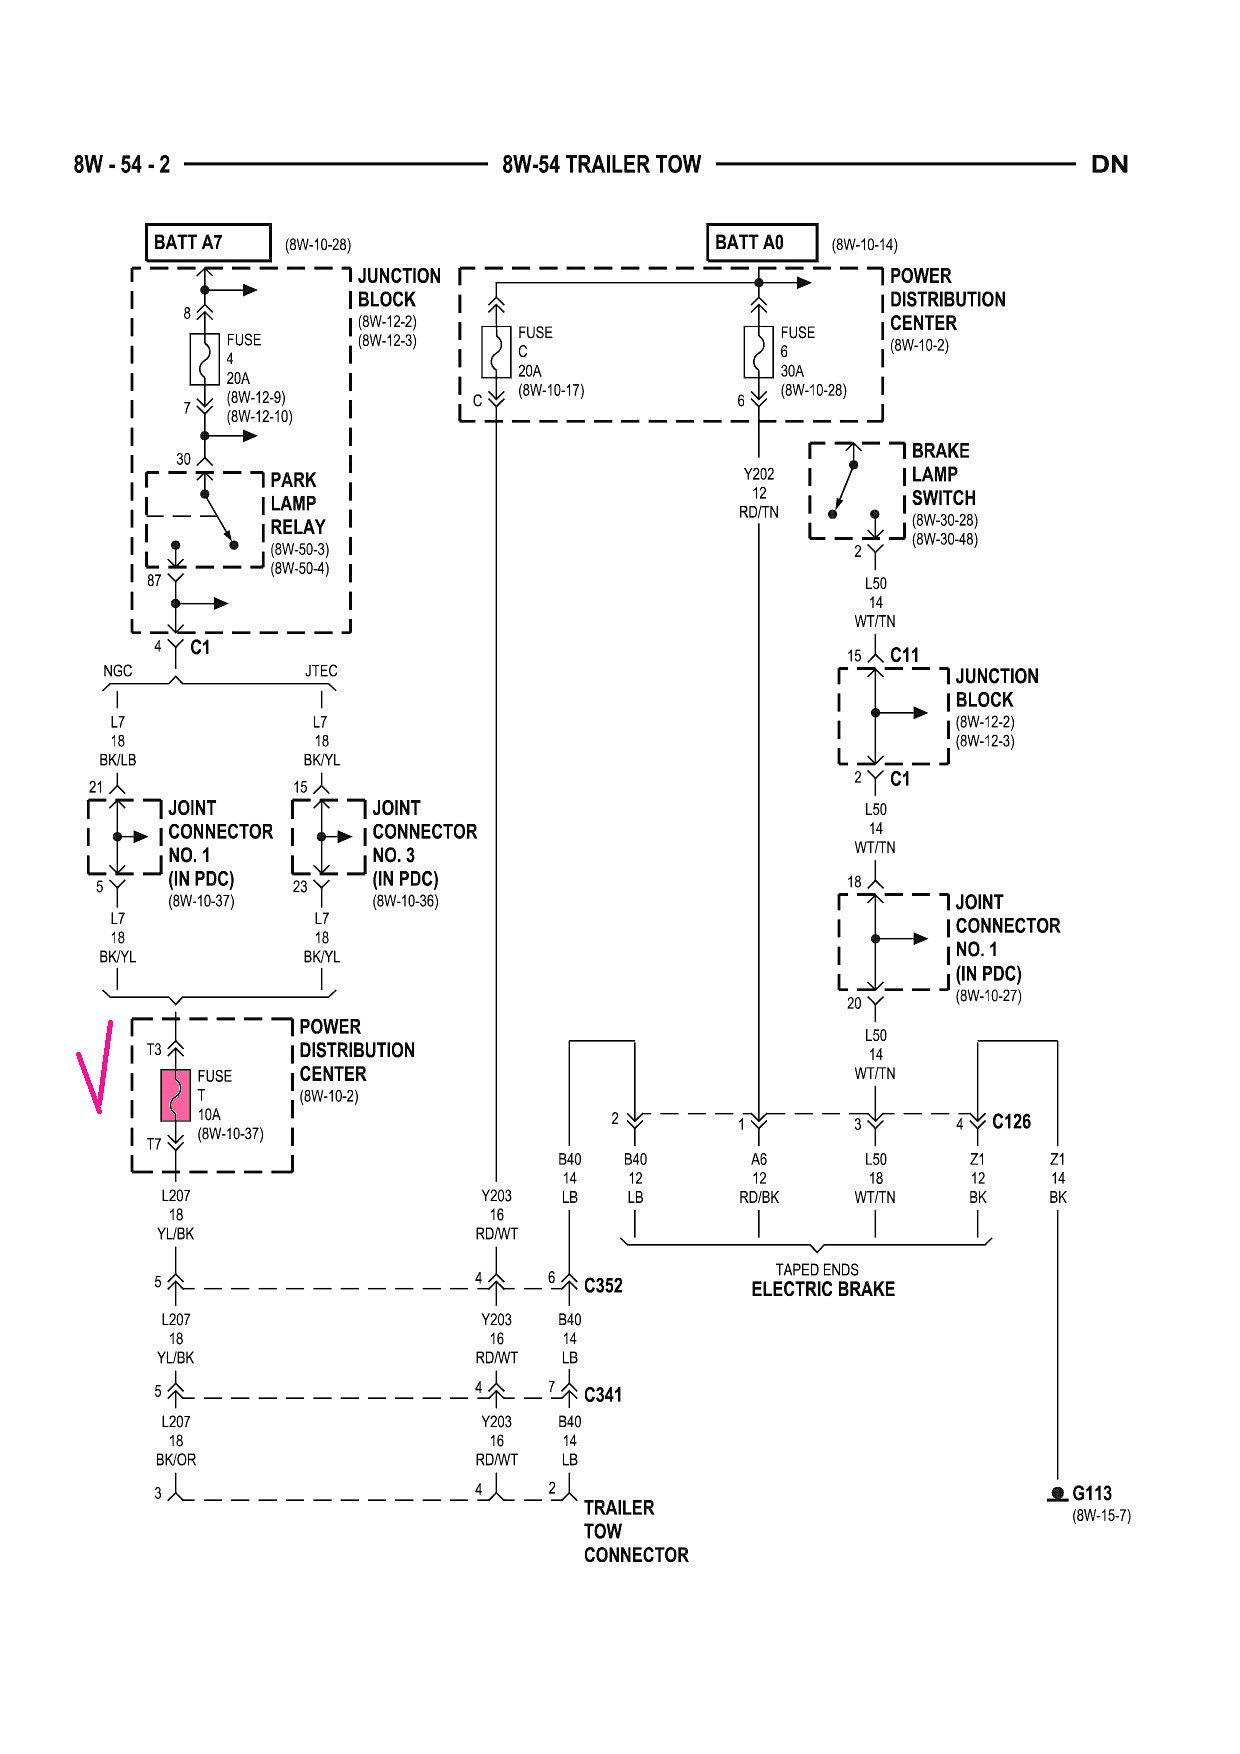 2003 dodge ram 2500 trailer wiring diagram Download-2008 Dodge Ram 1500 Trailer Brake Wiring Diagram Inspirationa 2003 Dodge Trailer Wiring Harness Diagram Wiring 14-j